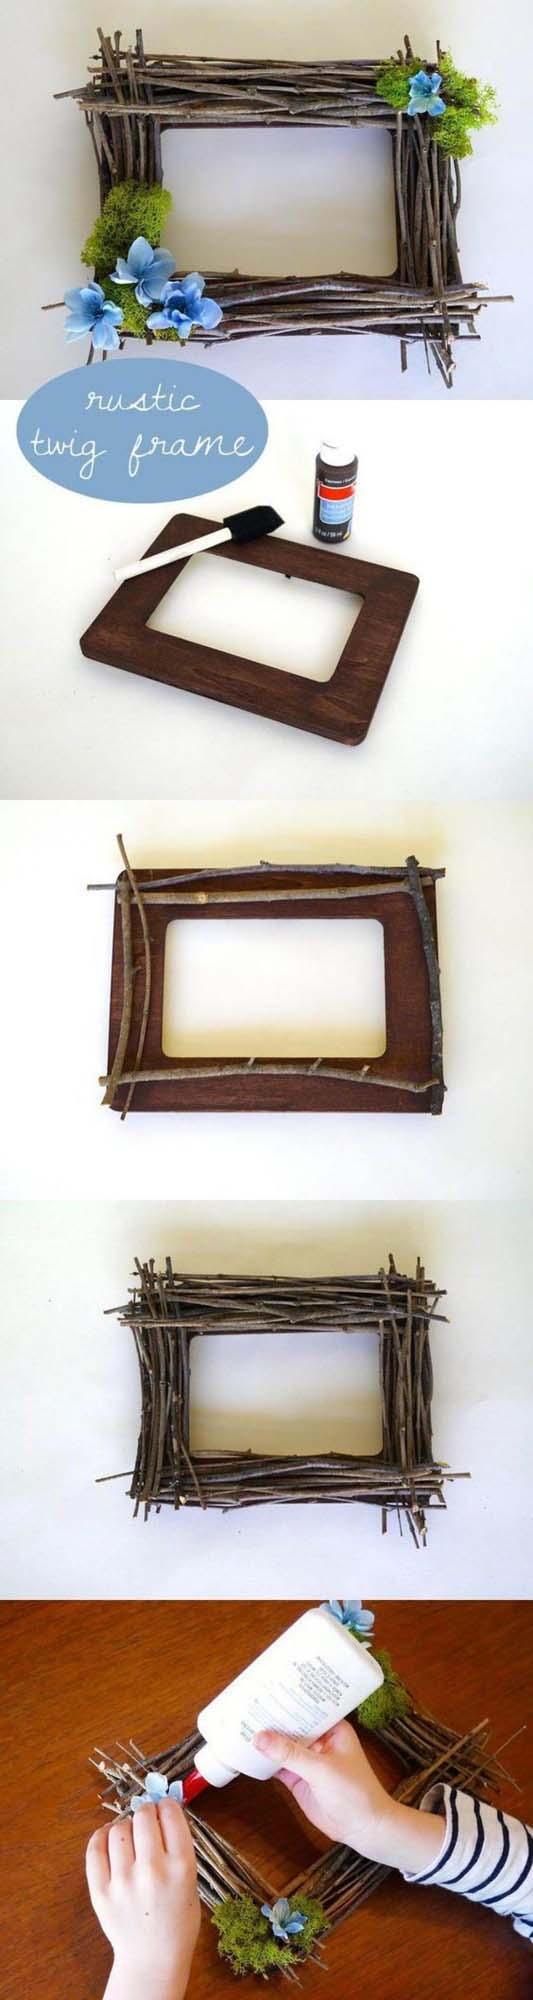 DIY Rustic Twig Frame #decor #home #branches #homedecorimage